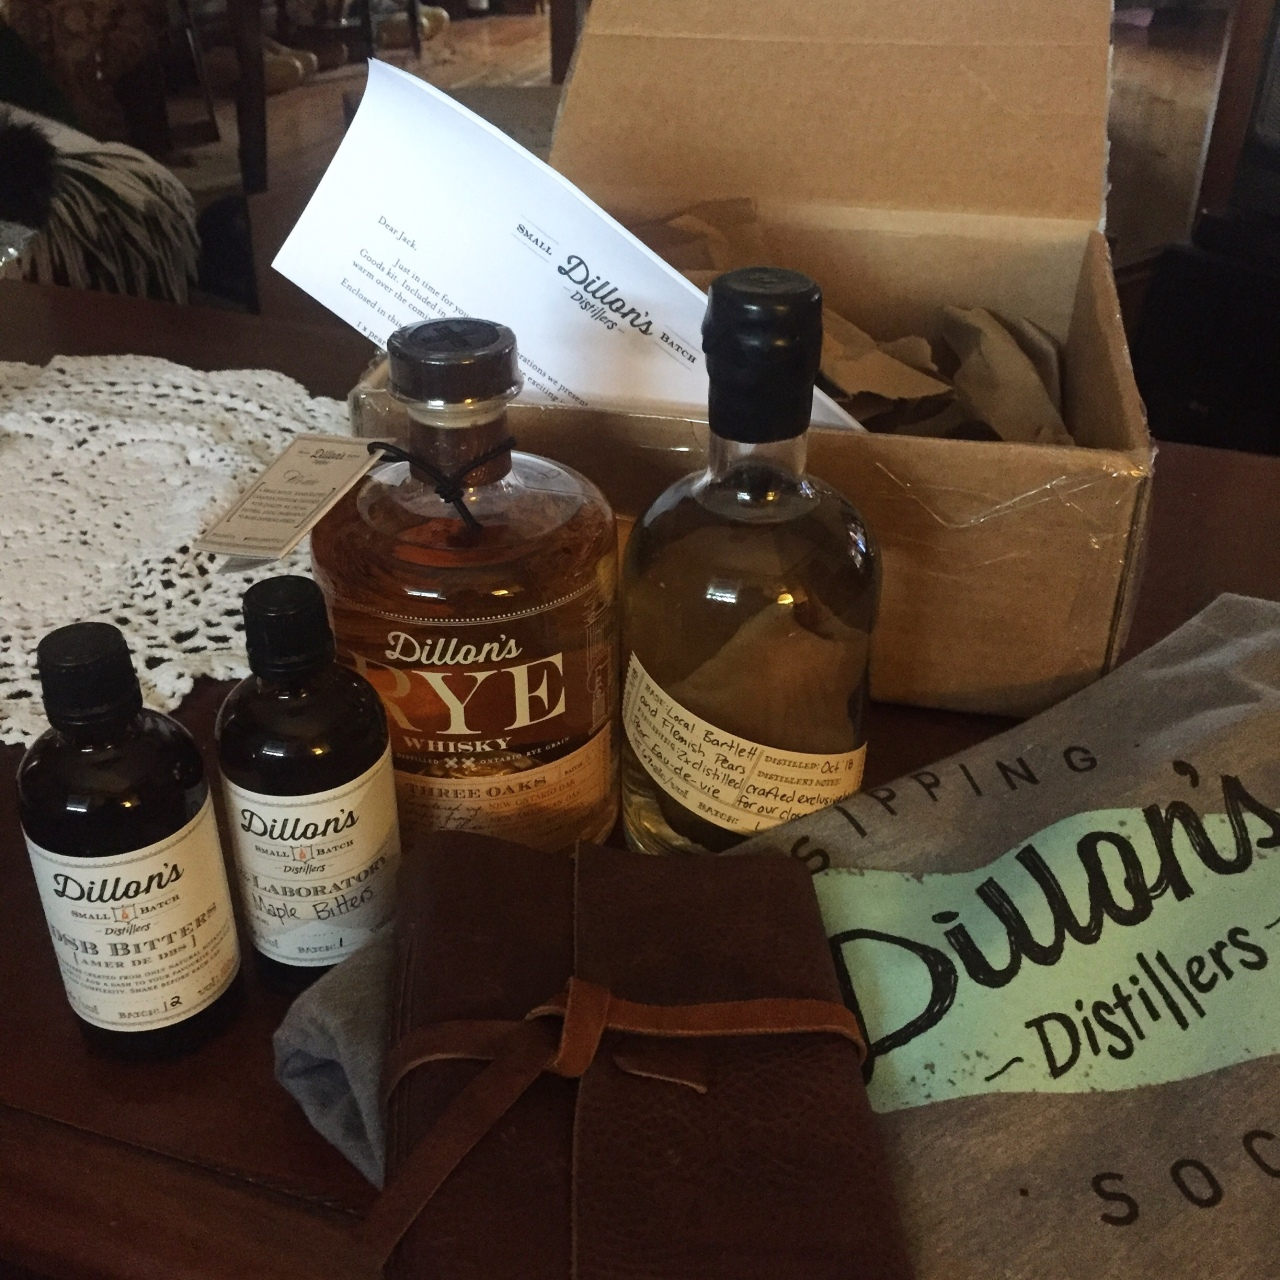 Dillon's Small Batch Distillers – The Sipping Society